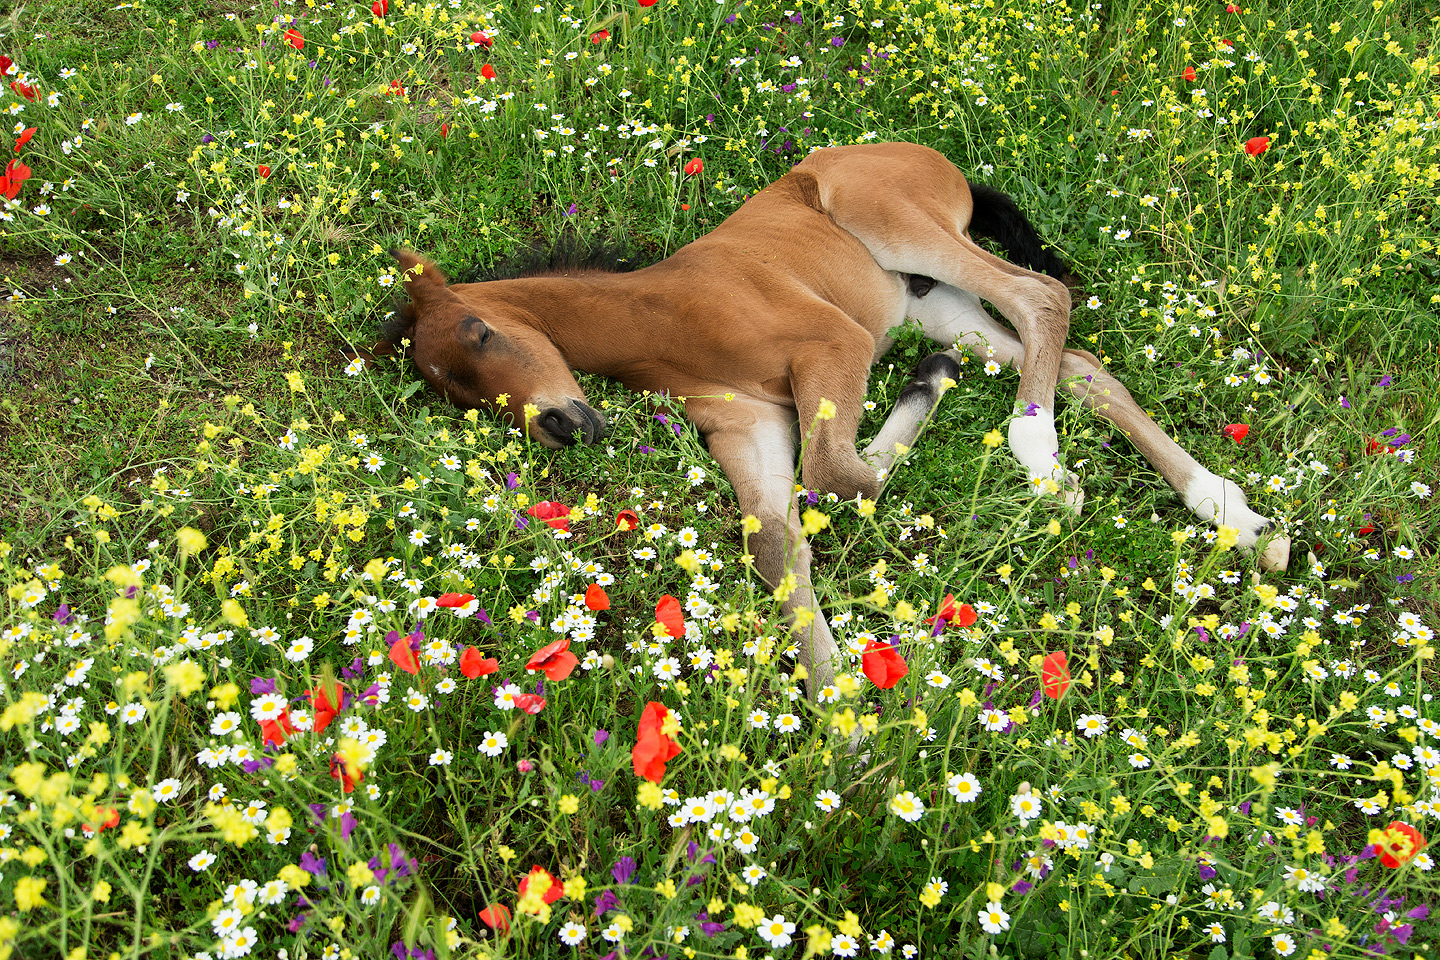 Andalusian foal dreaming among flowers